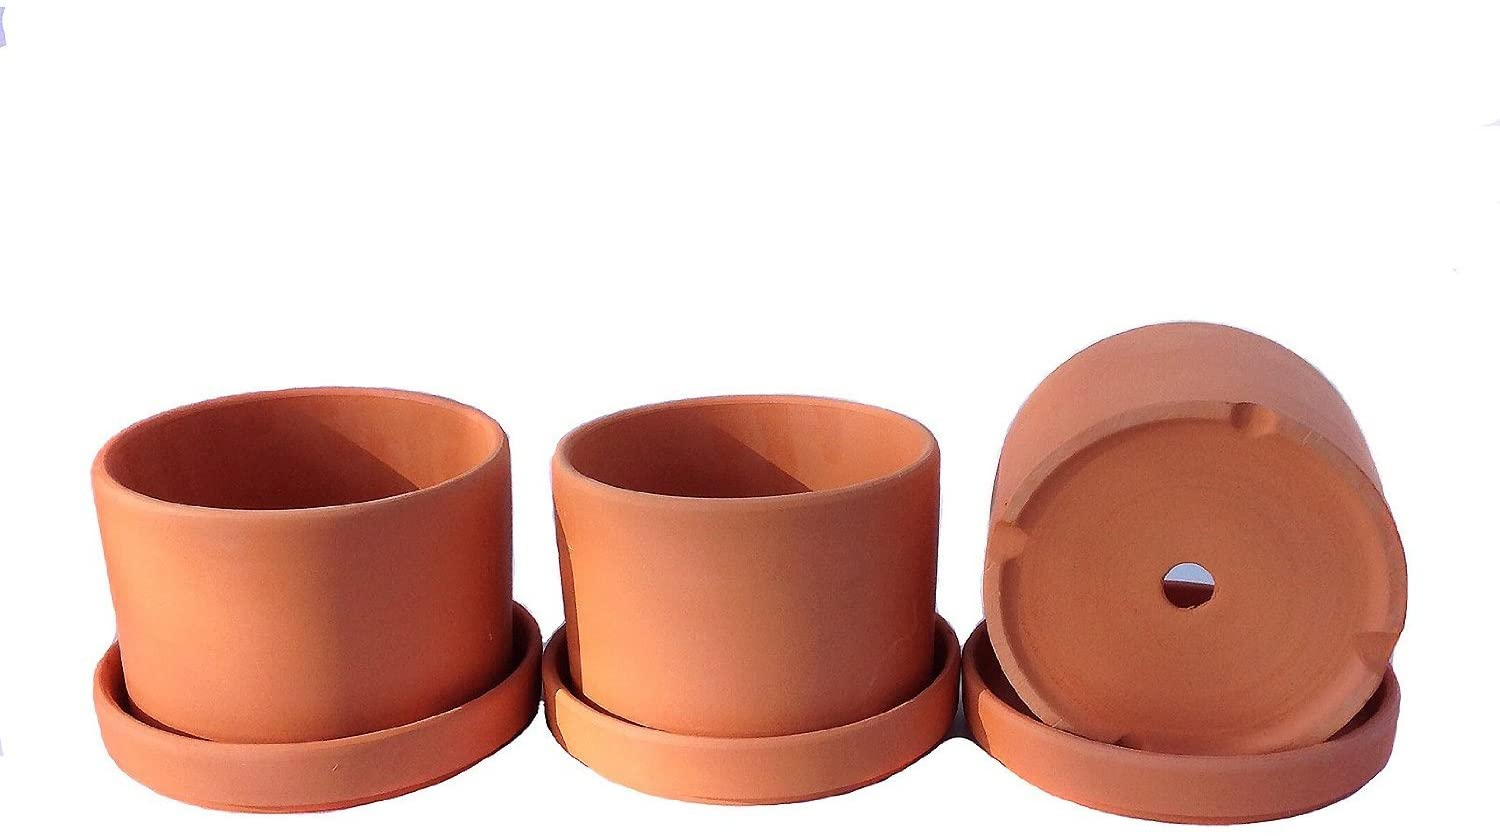 Natural Terracotta Round Fat Walled Garden Planters with Individual Trays. Set of 3